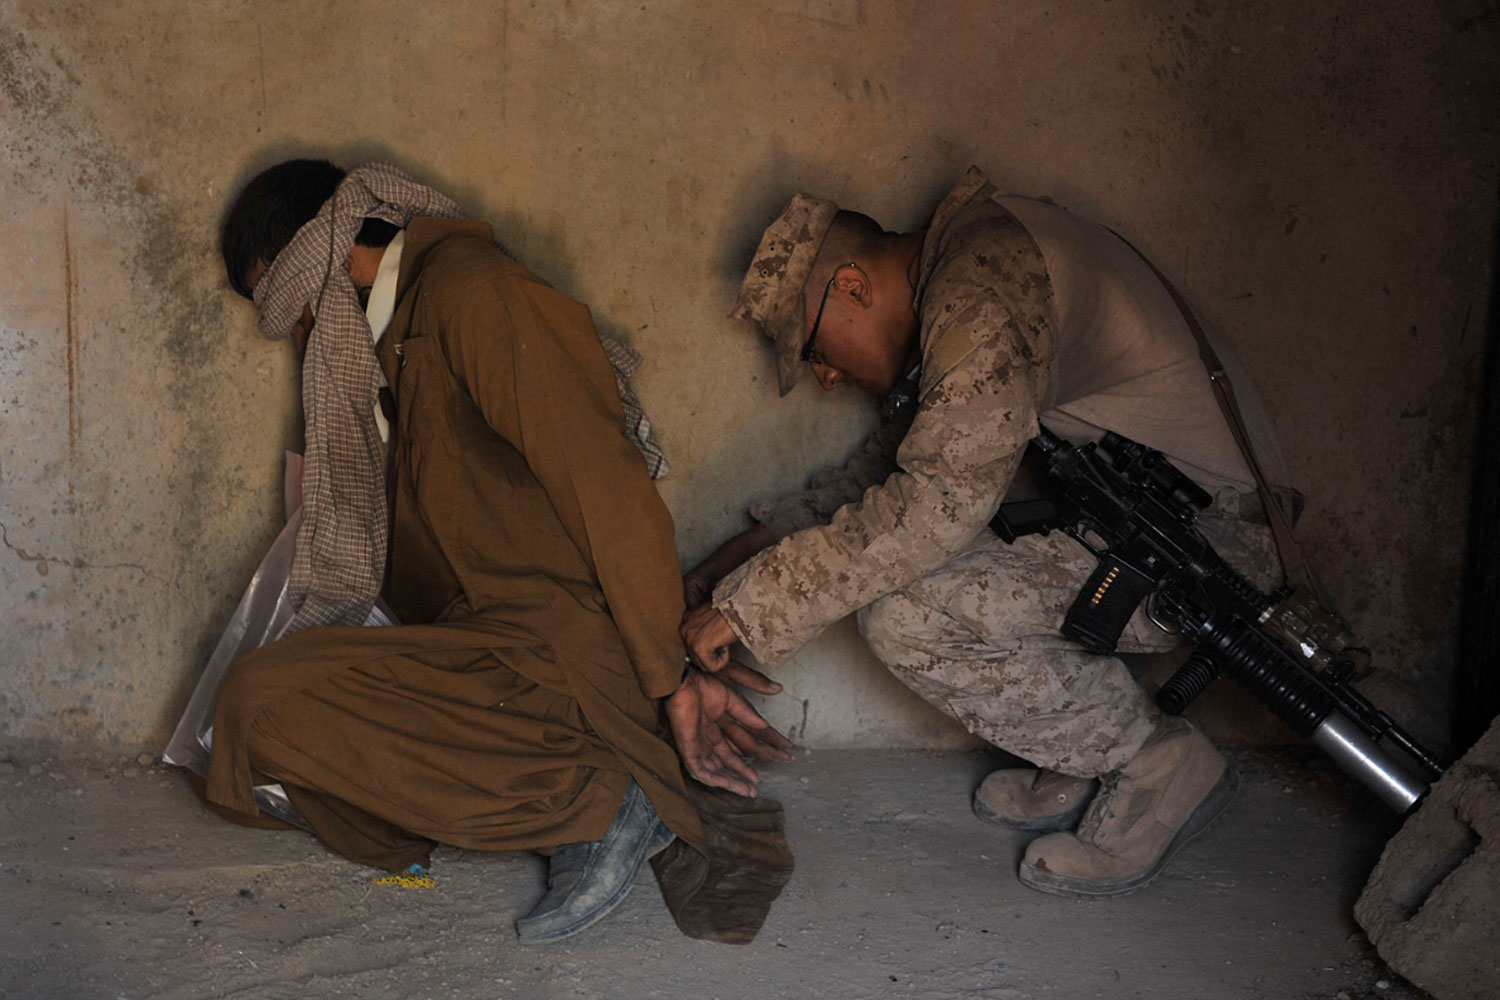 May 23, 2011. A U.S. Marine from 3rd Battalion 9th Marines Kodiak Company checks handcuffs of a detainee arrested after an early morning operation in Helmand Province, Afghanistan.